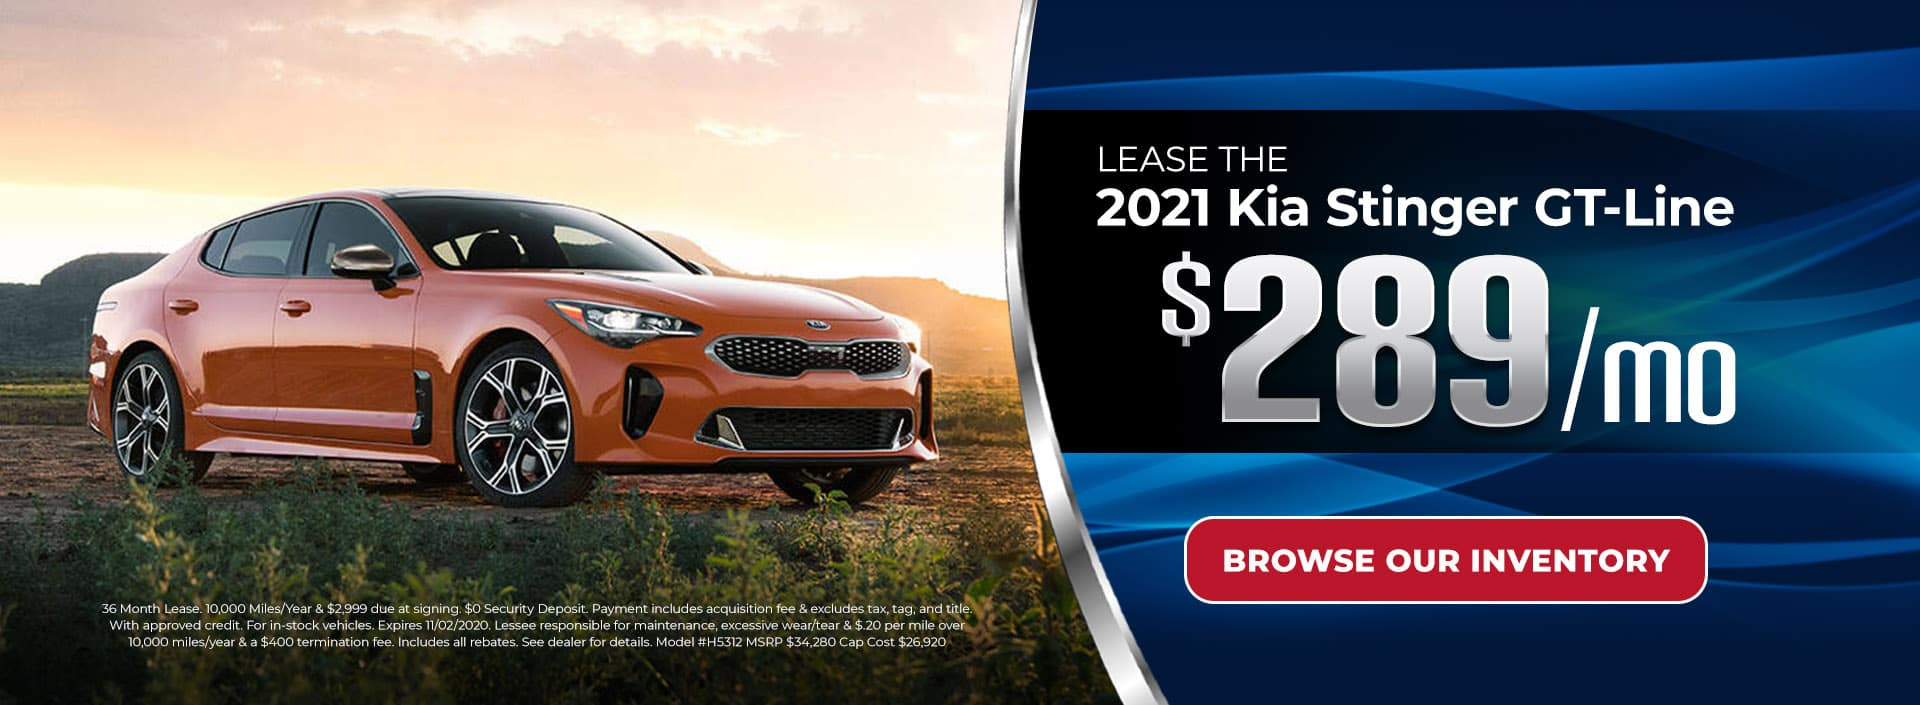 :ease 2021 Kia Stinger GT-Line for $289/mo